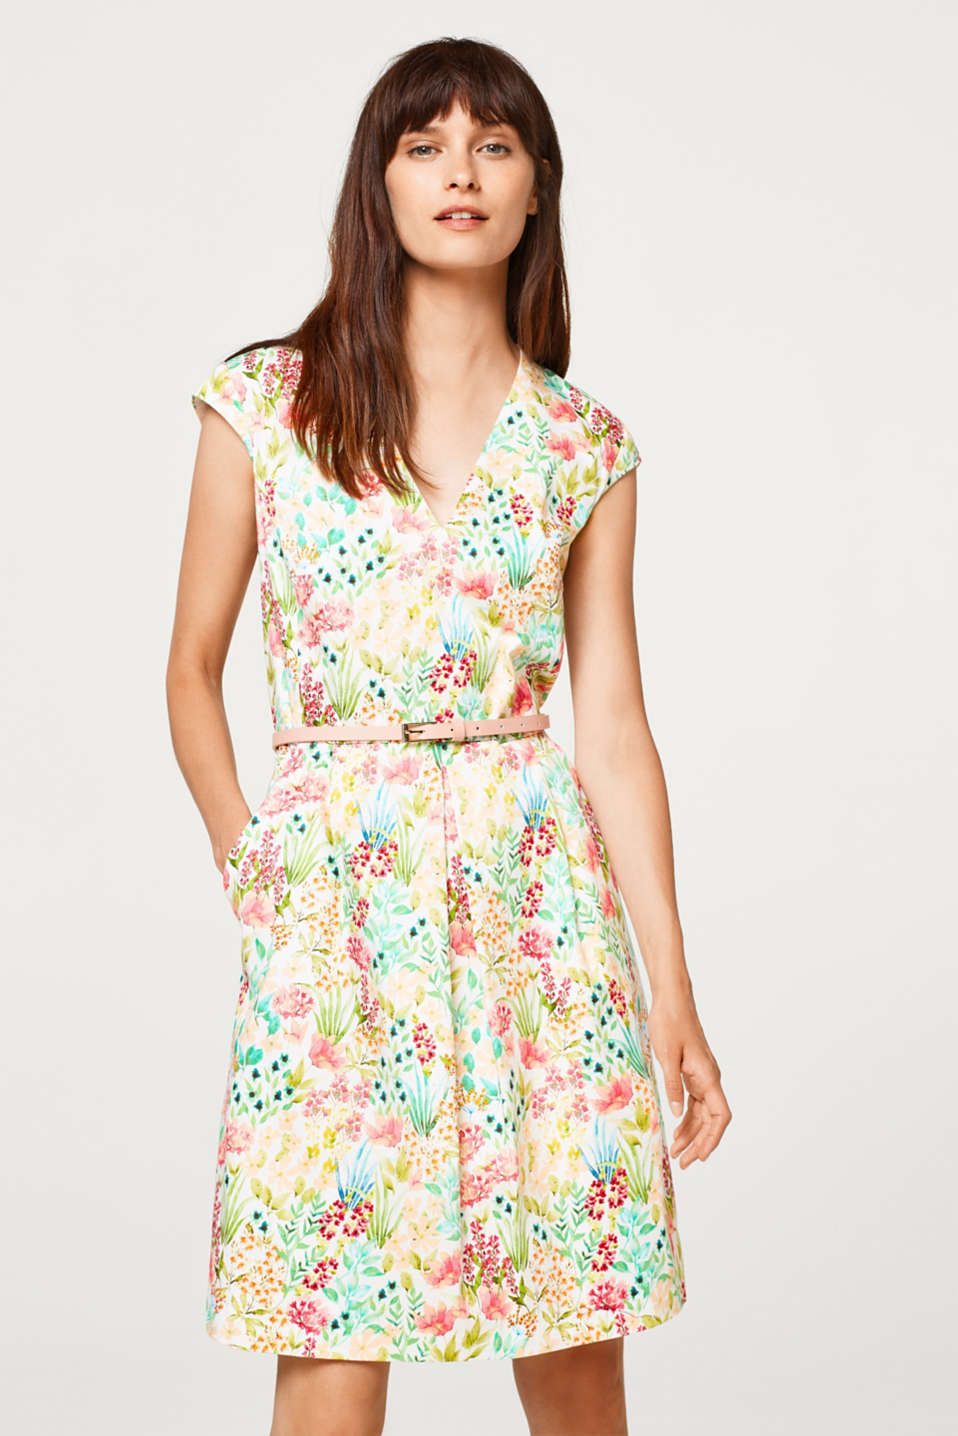 Esprit - Printed satin dress, stretch cotton